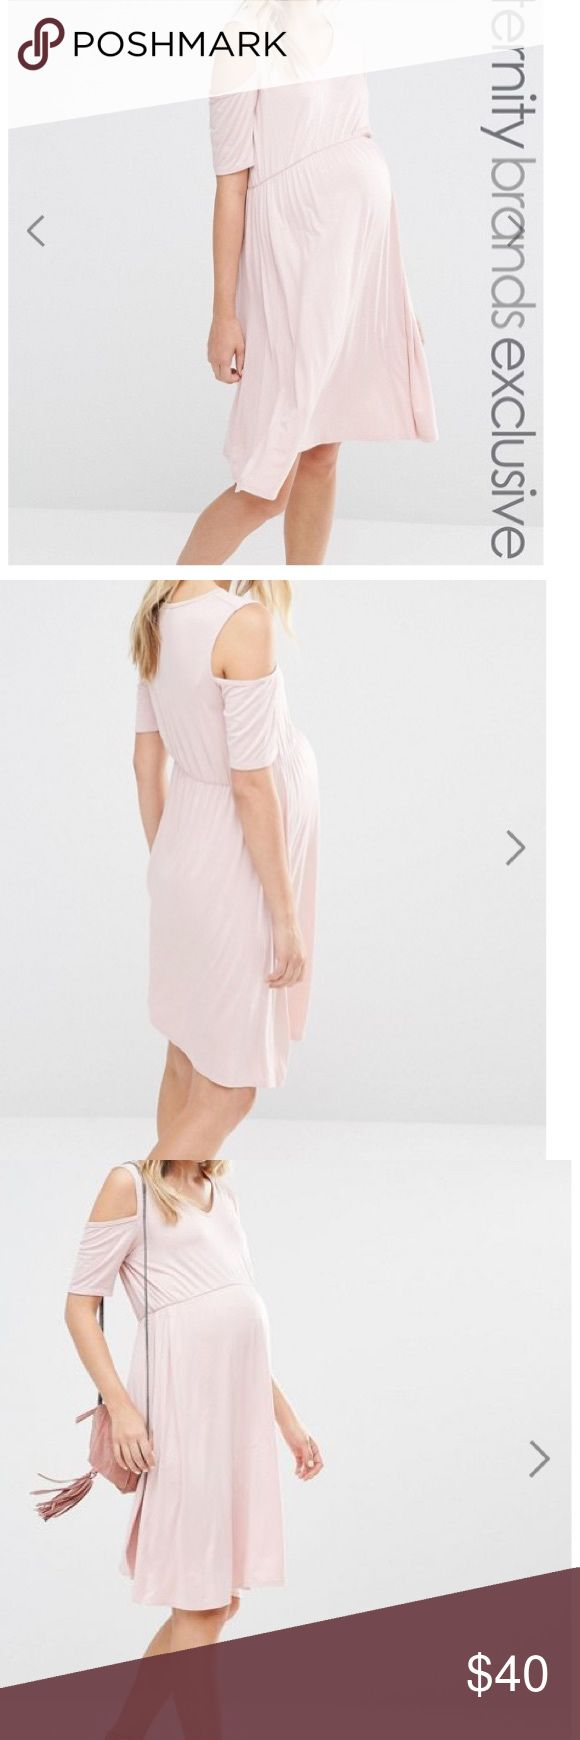 NWT ASOS maternity dress 4 Super soft and comfy US size 4. ASOS size 8. Nude color. Bluebelle maternity from ASOS ASOS Maternity Dresses